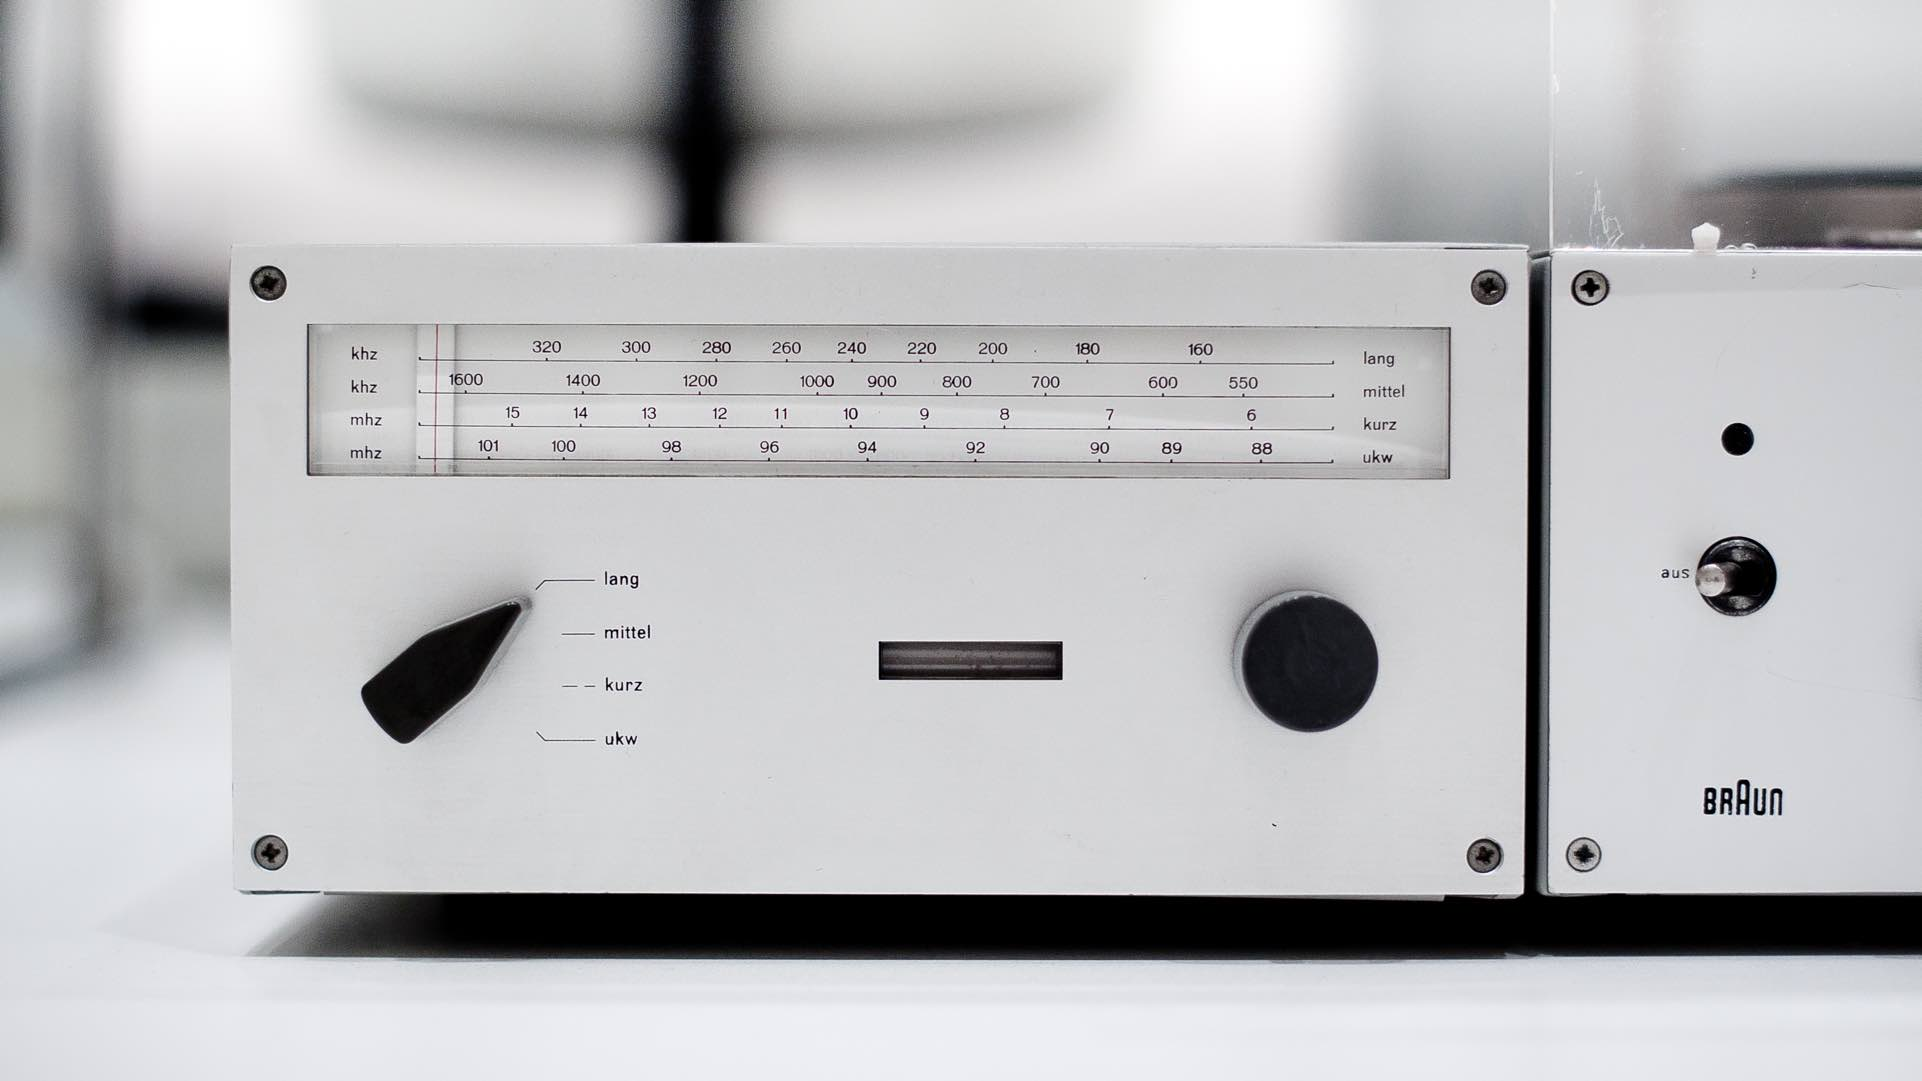 Braun radio designed by Dieter Rams.